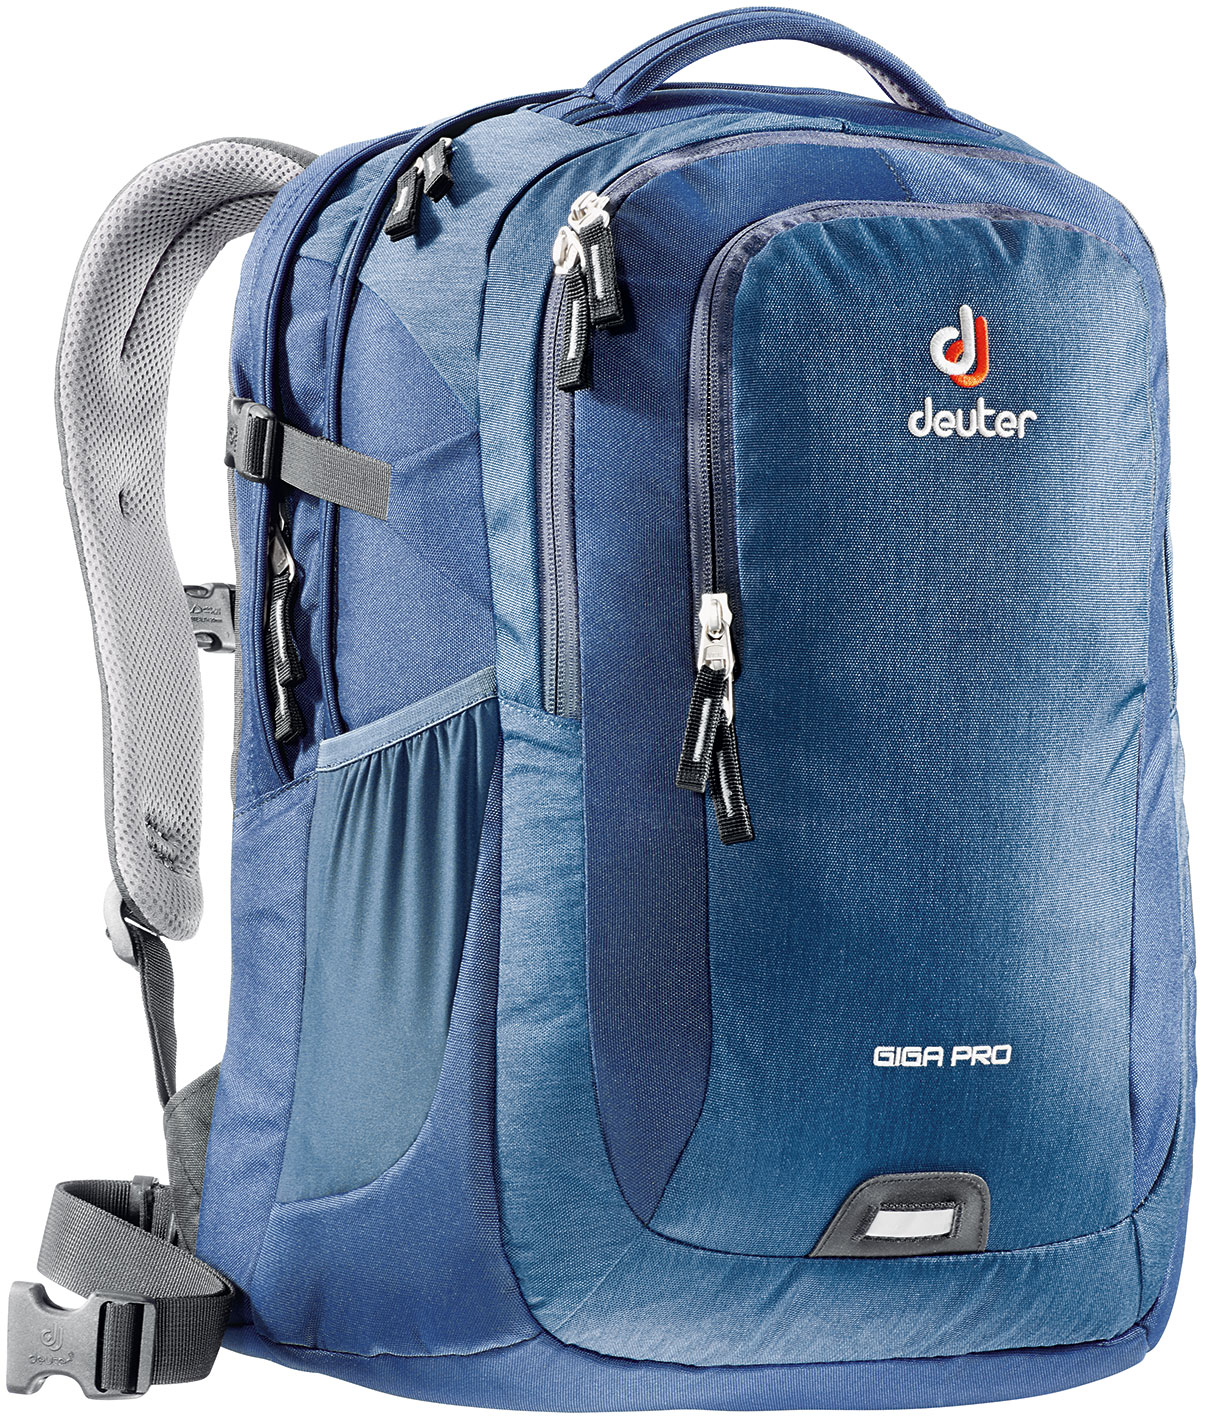 Deuter - Giga Pro midnight dresscode - Daypacks -